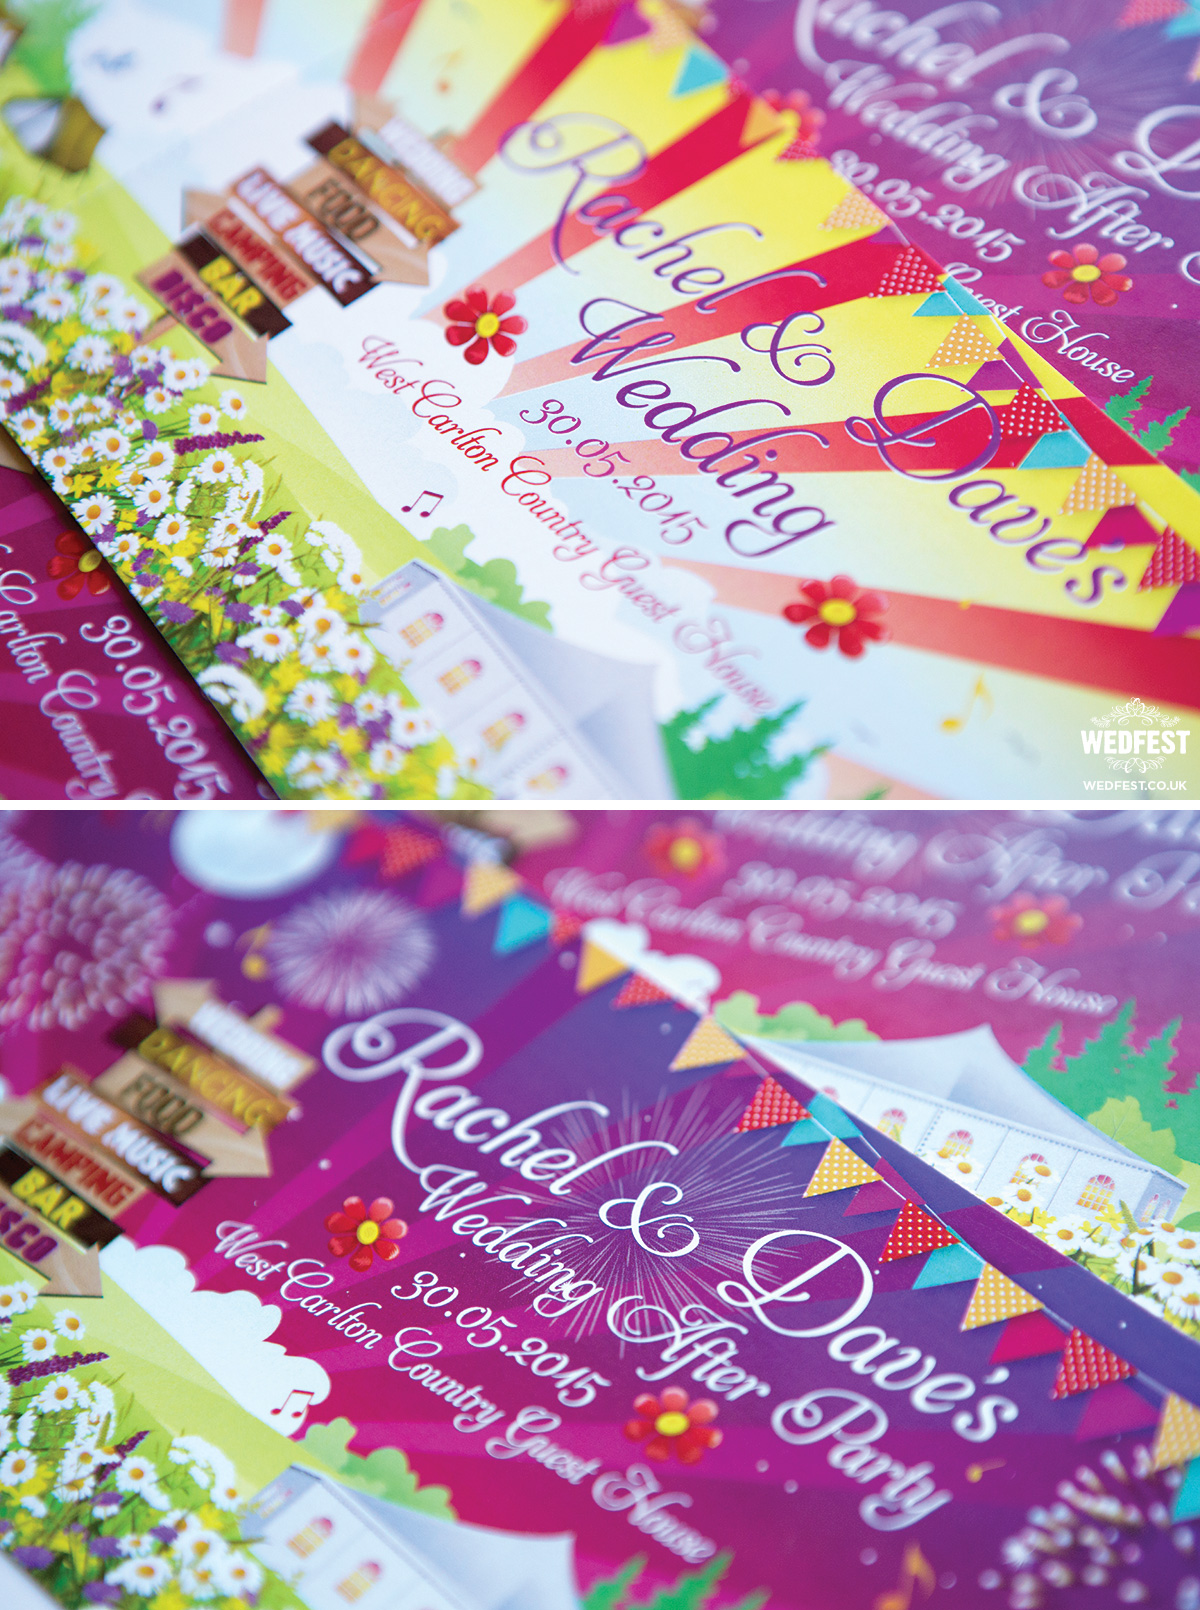 west carlton country house festival wedding invite